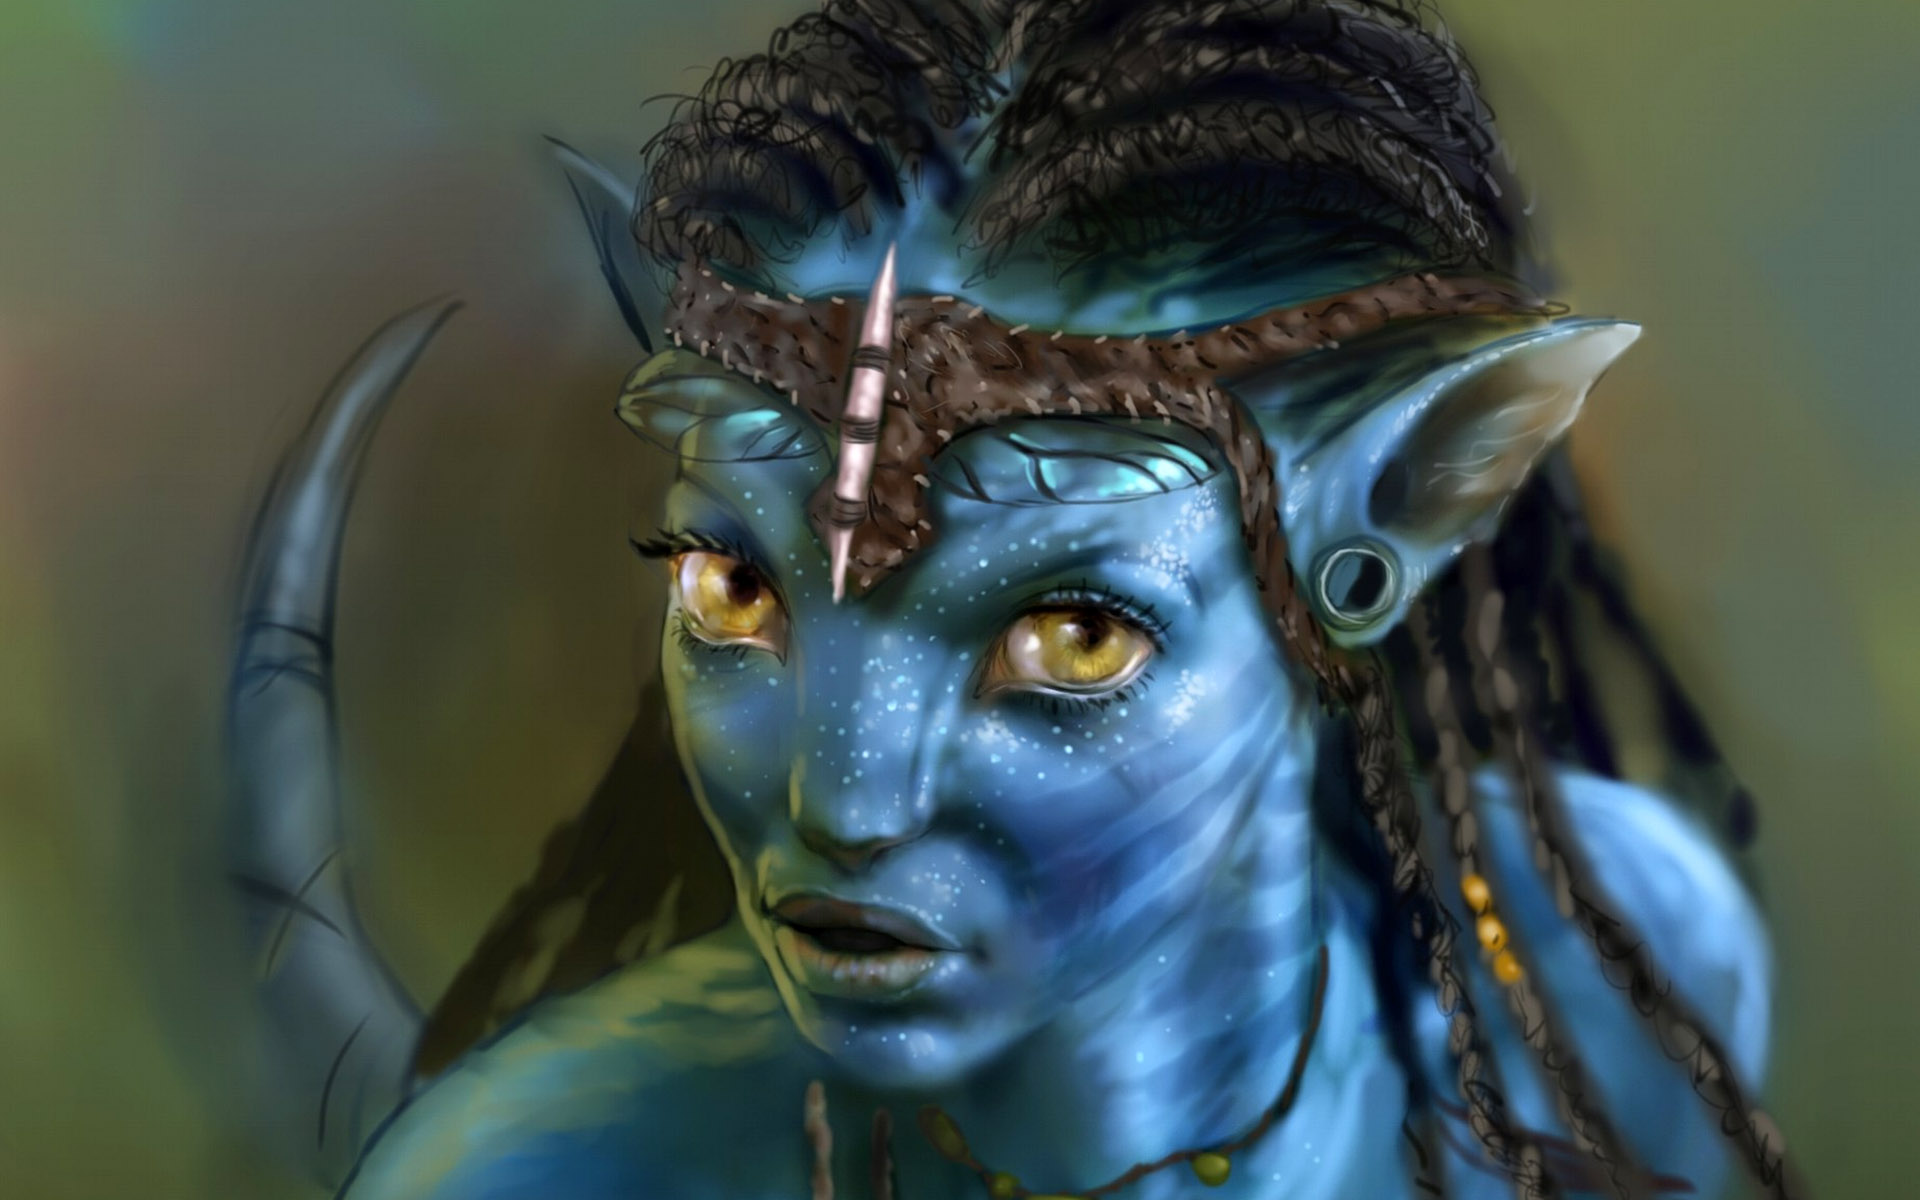 amazing hd wallpapers of the 3d epic movie avatar | leawo official blog